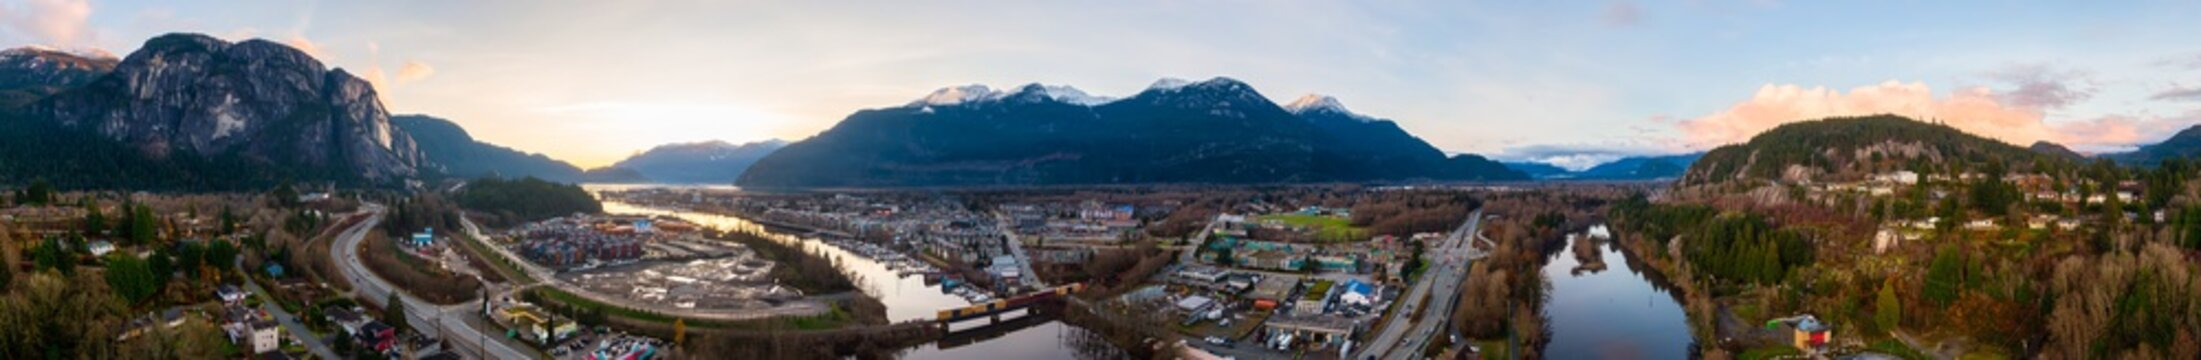 Aerial Panoramic View of Residential Homes, Sea to Sky Highway and Shopping Mall. Colorful Sunset Sky. Taken in Squamish, North of Vancouver, British Columbia, Canada.